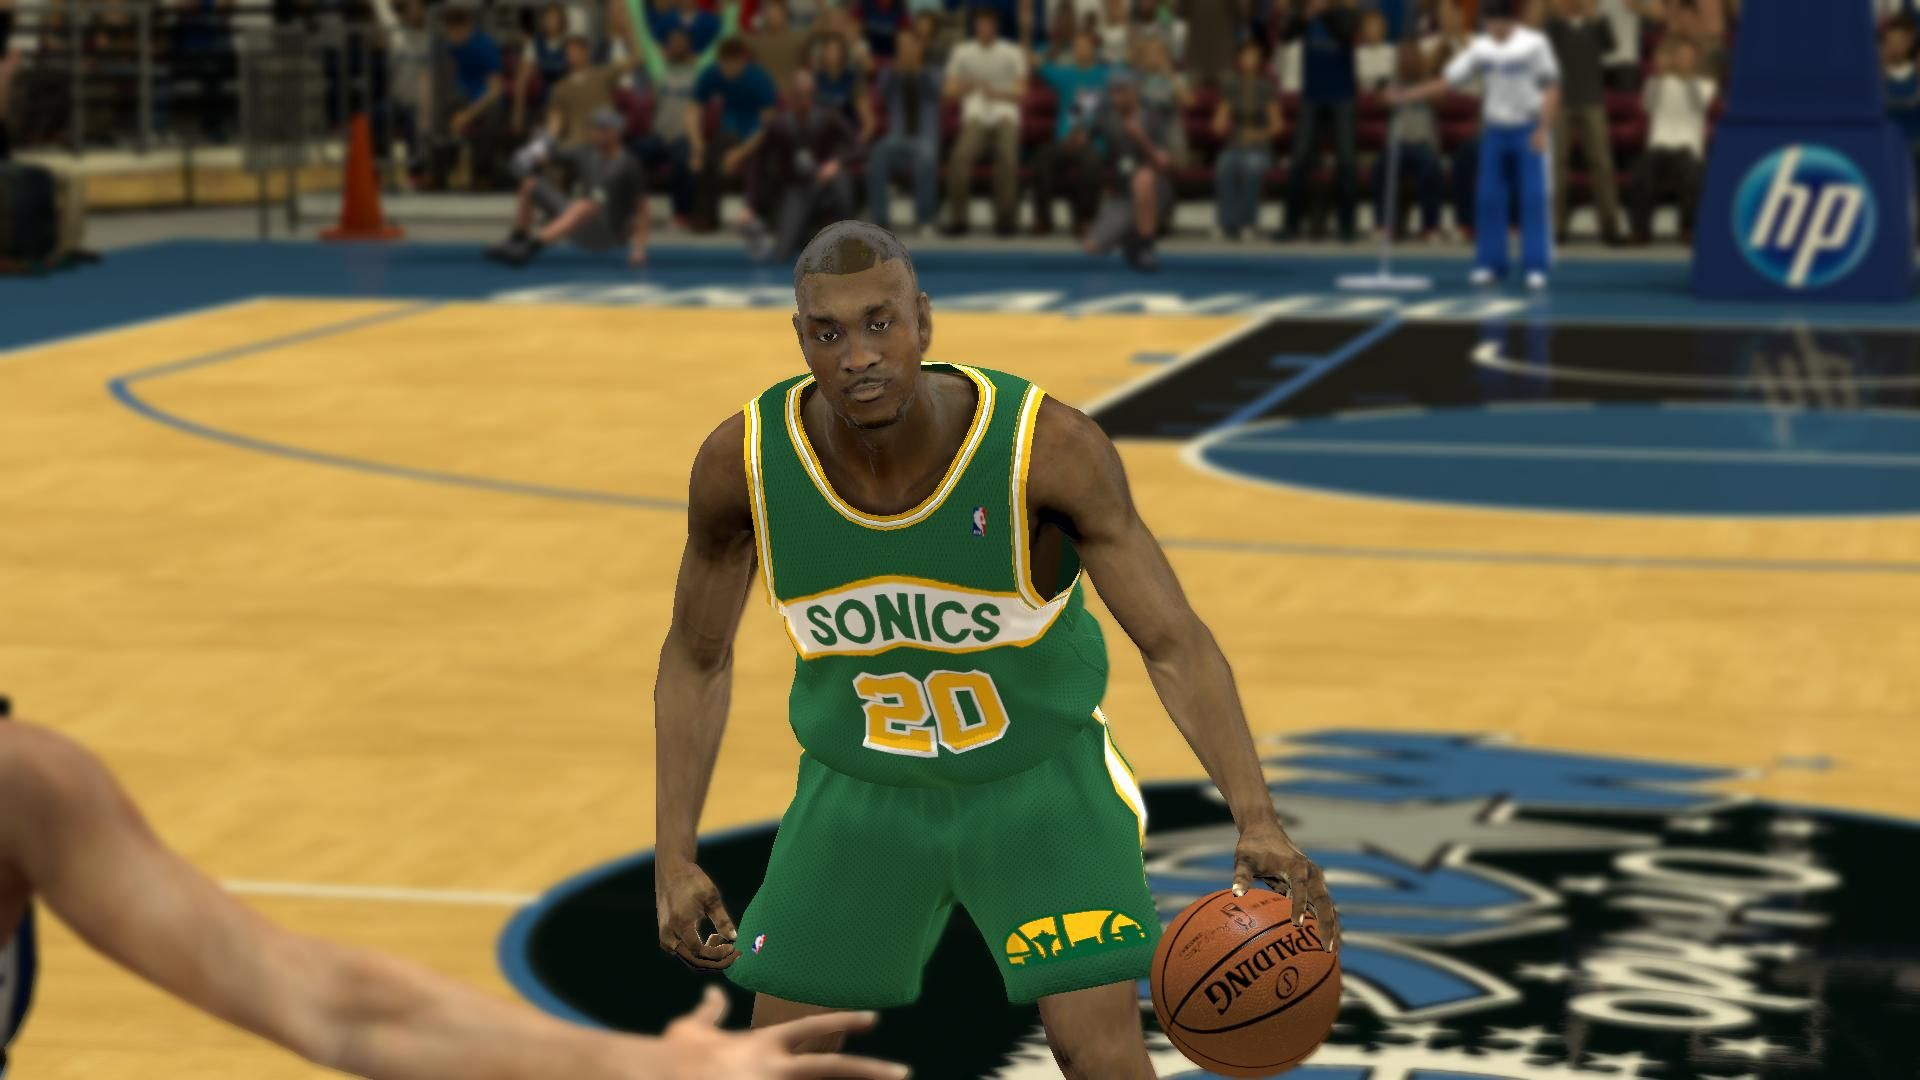 NLSC • NBA LIVE 95 RELEASED ON PAGE 1 NBA ON NBC GLOBAL RELEASED